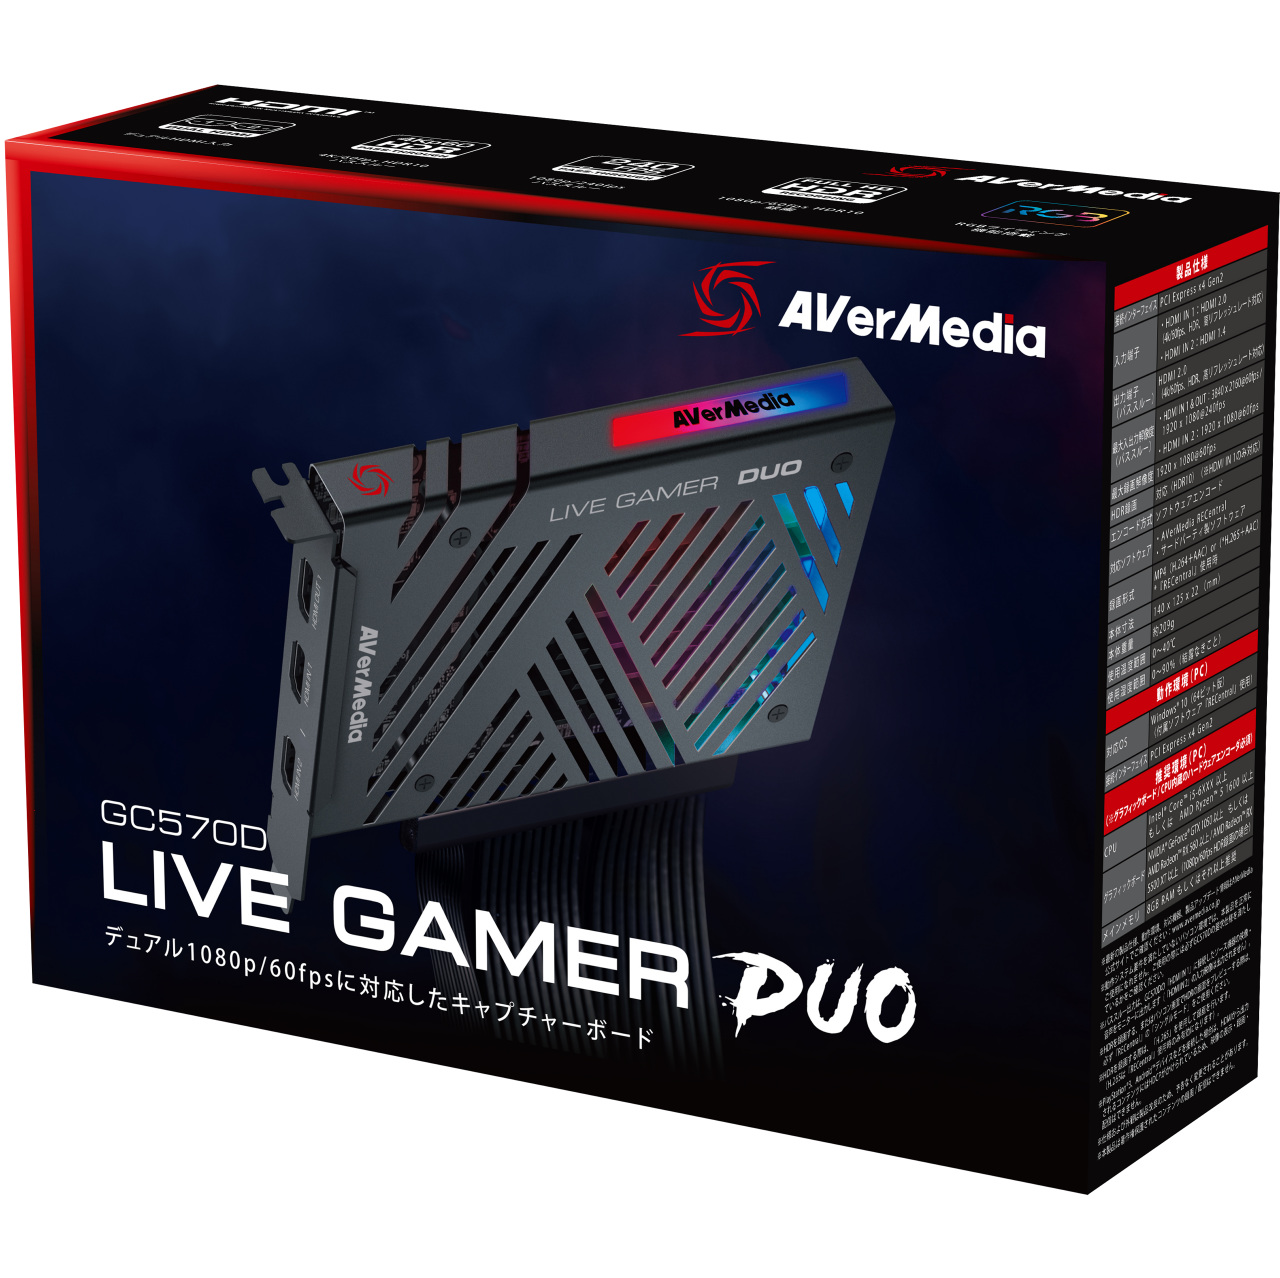 Live Gamer DUO  GC570D